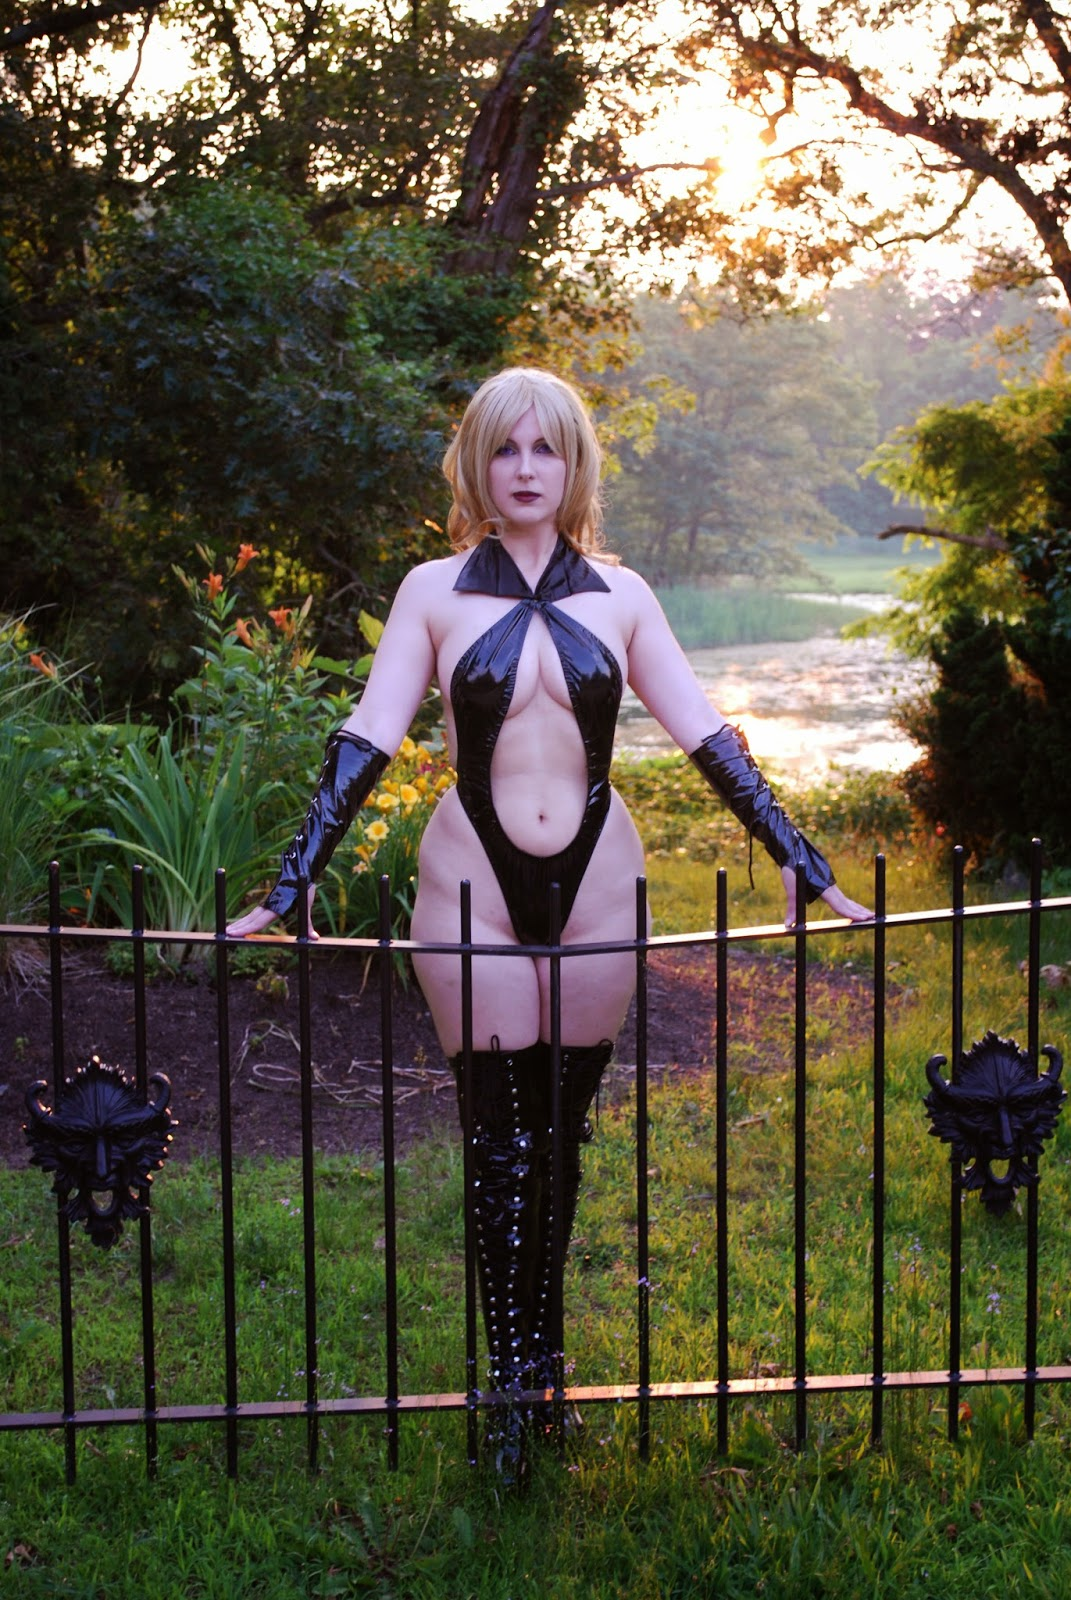 Draculina Cosplay, posted on Wednesday, 30 July 2014